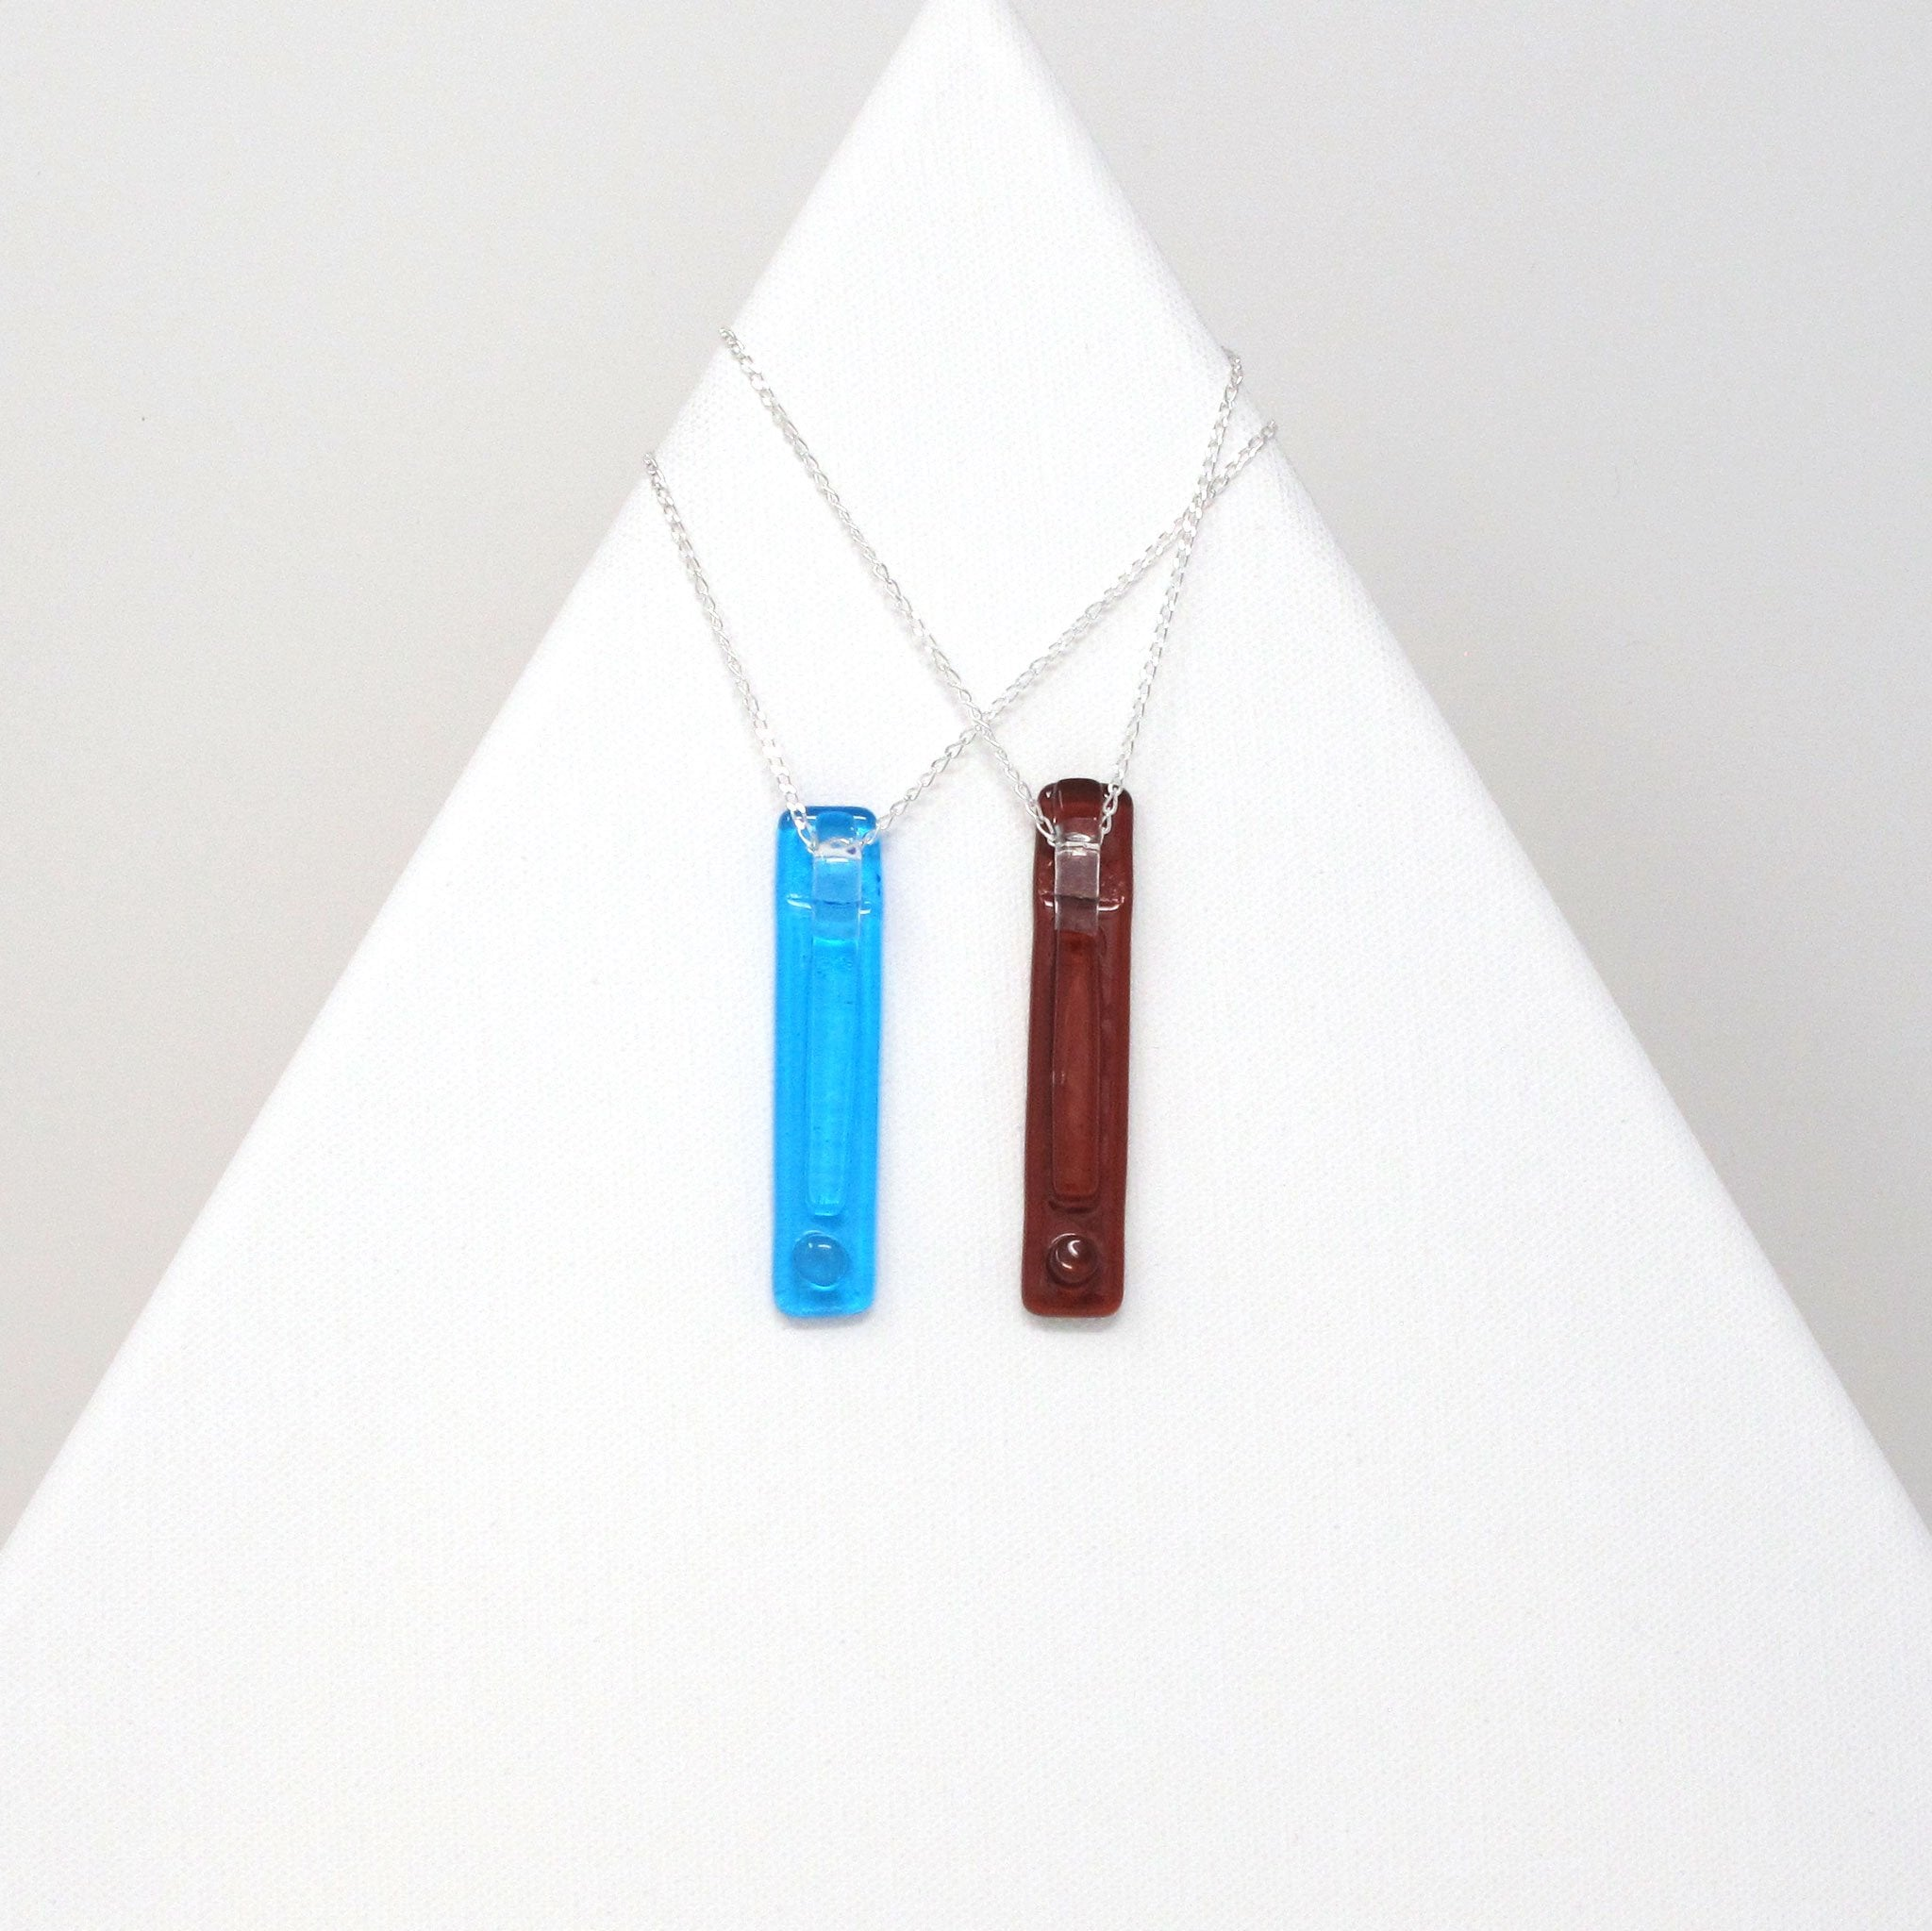 Glass bar pendant necklace on 32 inch sterling silver chain, exclamation points in various colors